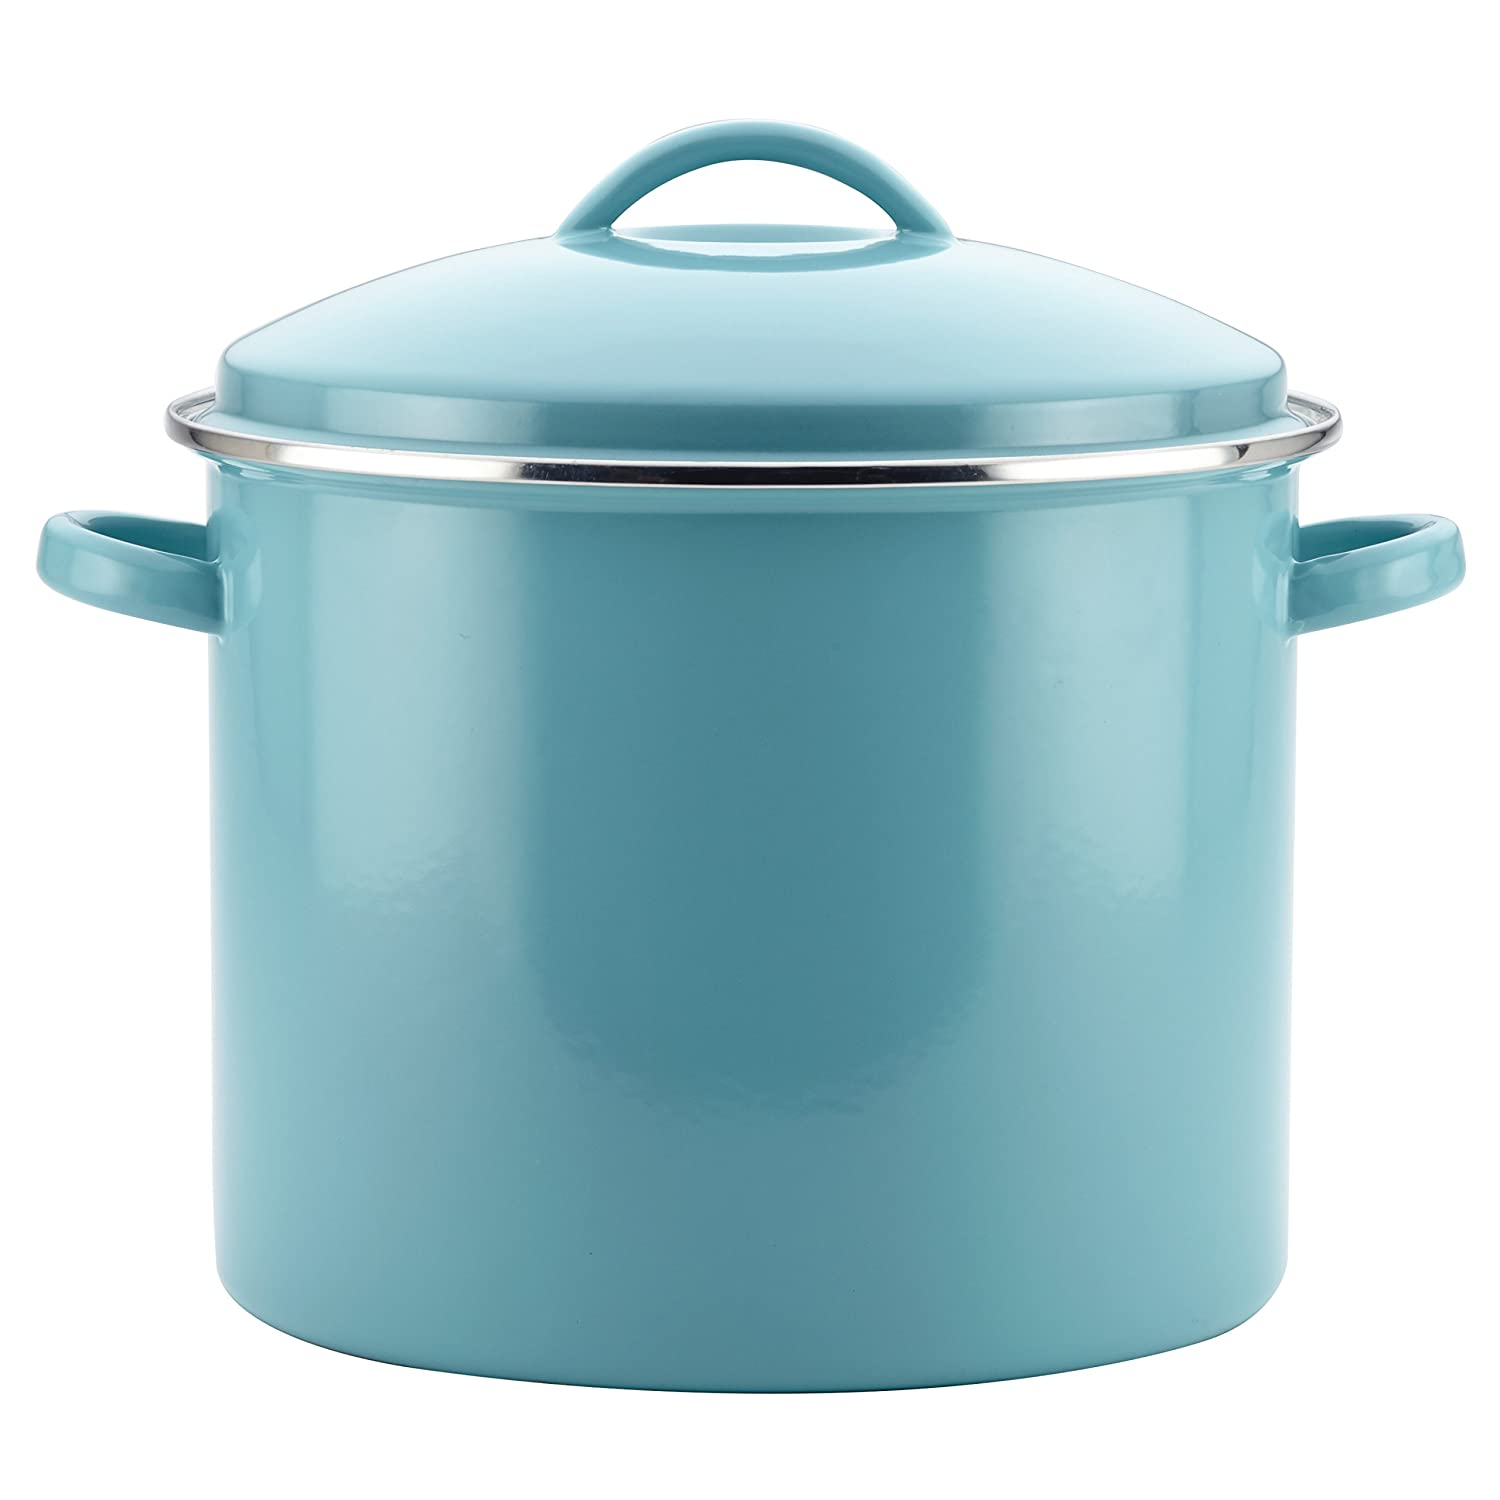 Farberware 46497 Enamel-on-Steel Large Covered Stockpot, 16-Quart, Aqua